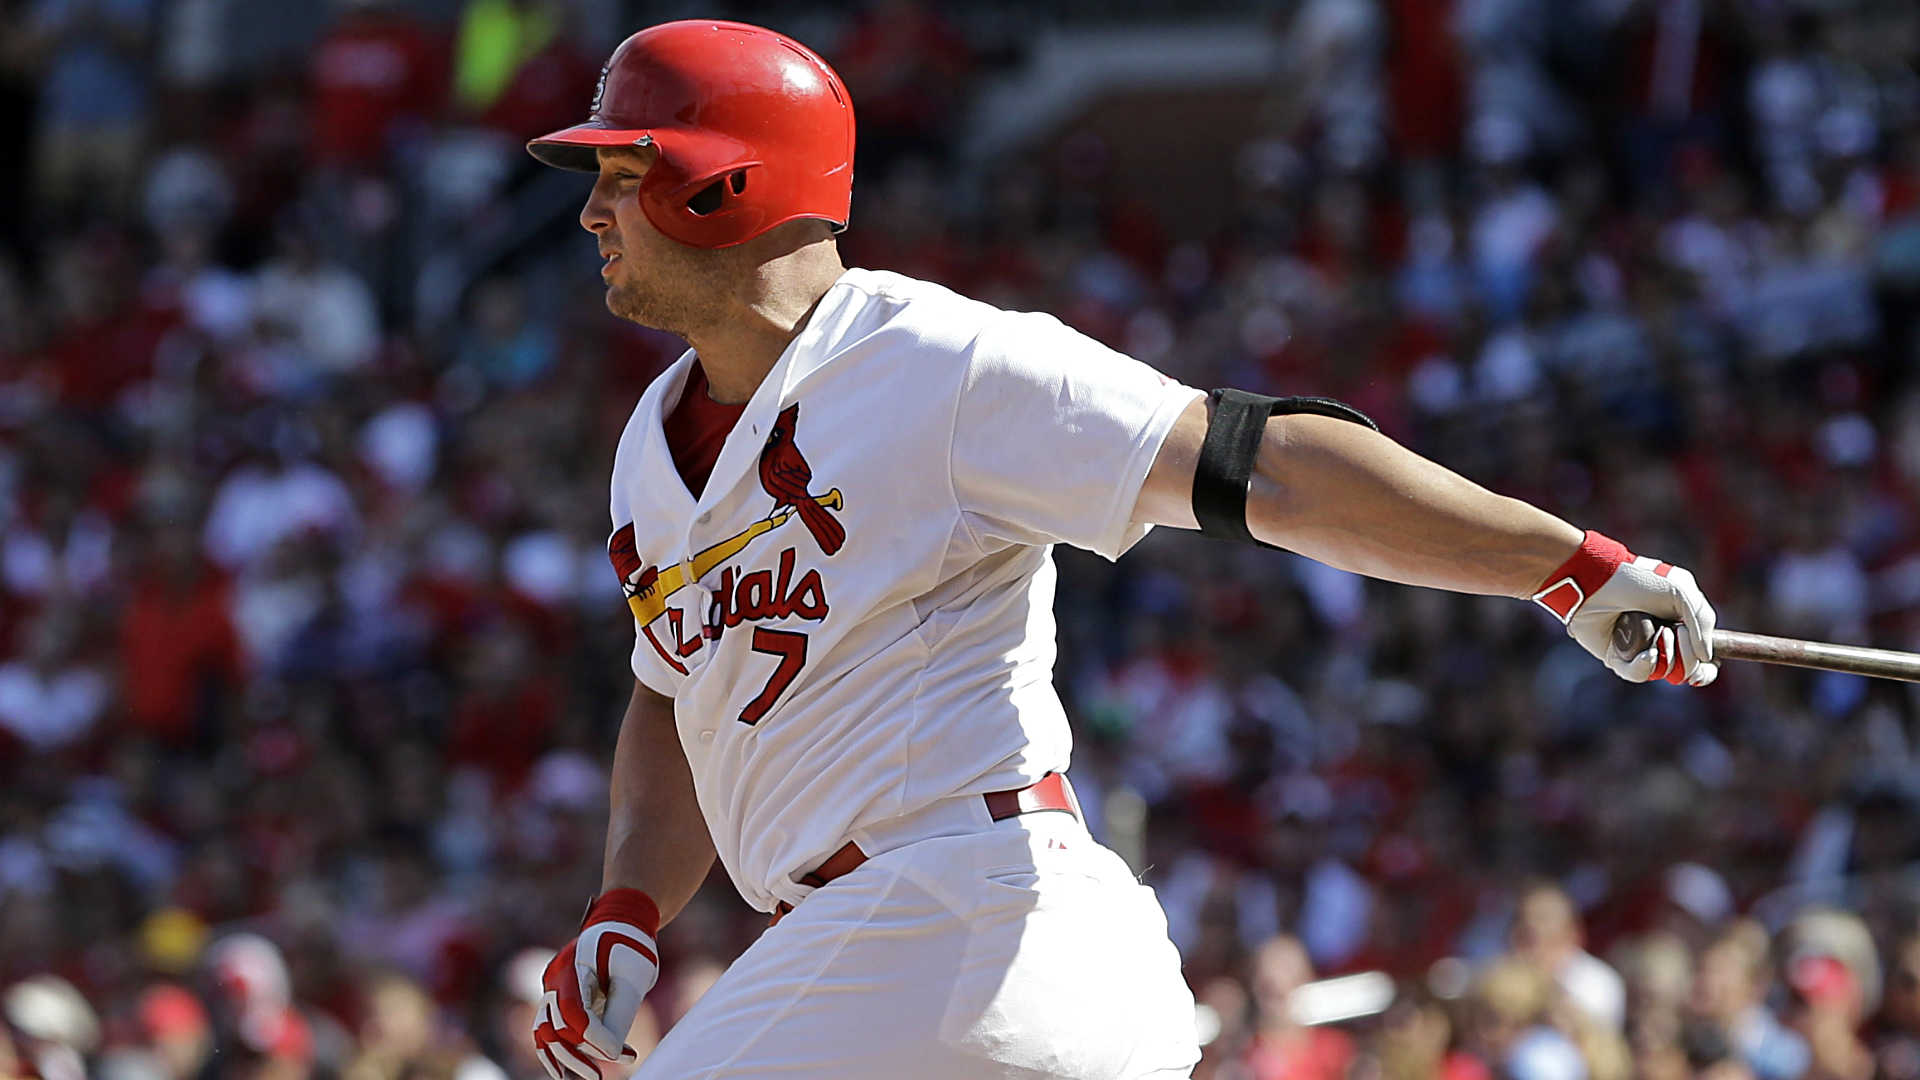 Matt-Holliday-090114-AP-FTR.jpg